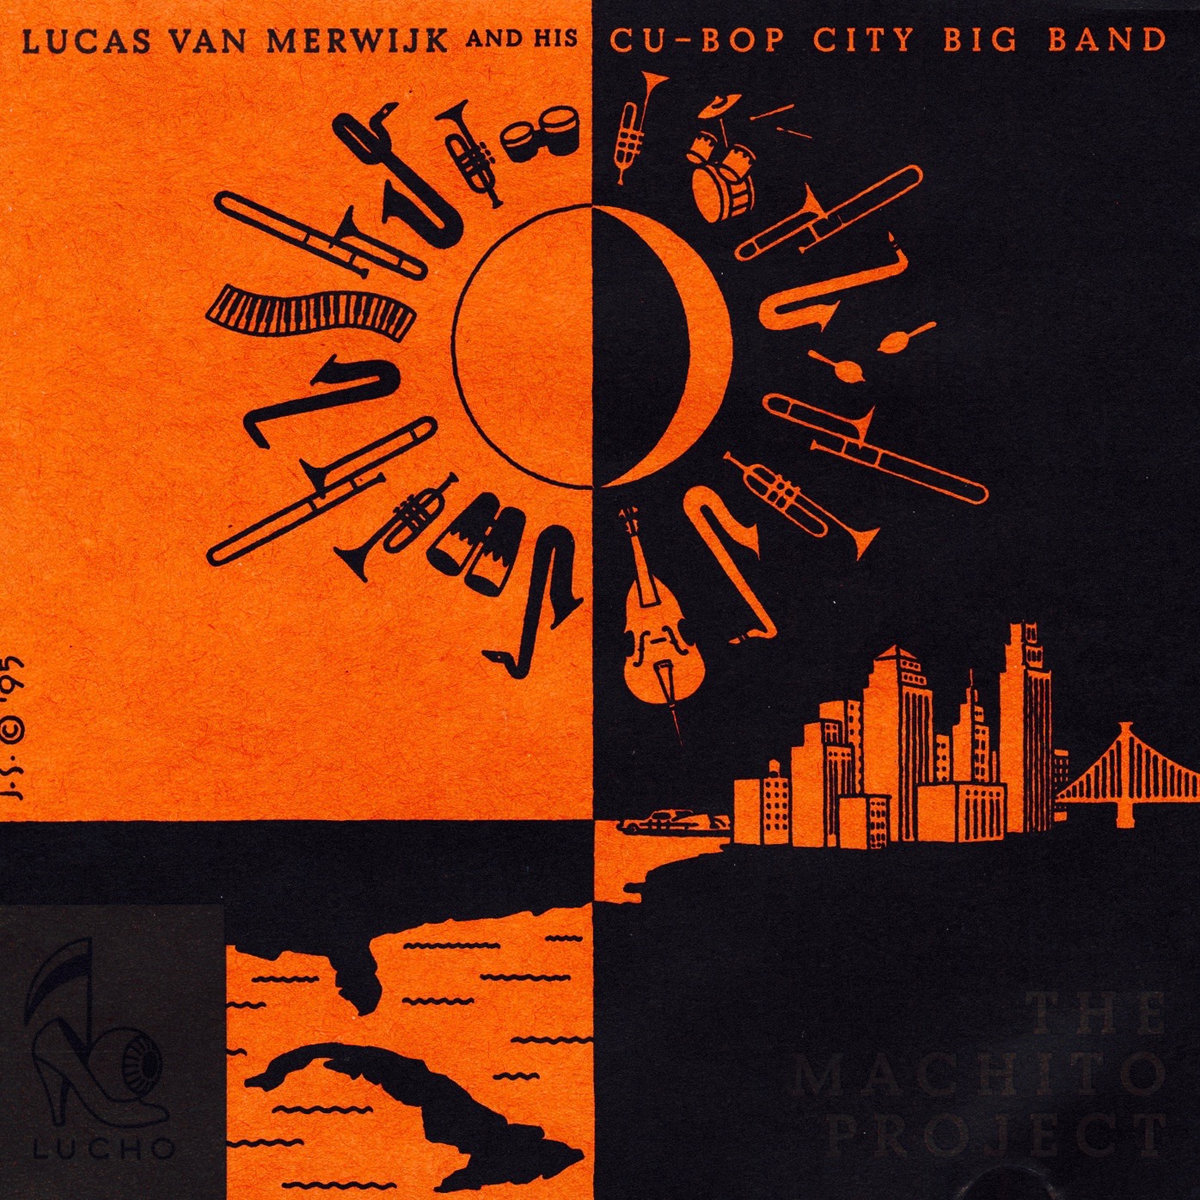 Cubop City Big Band - The Machito Project